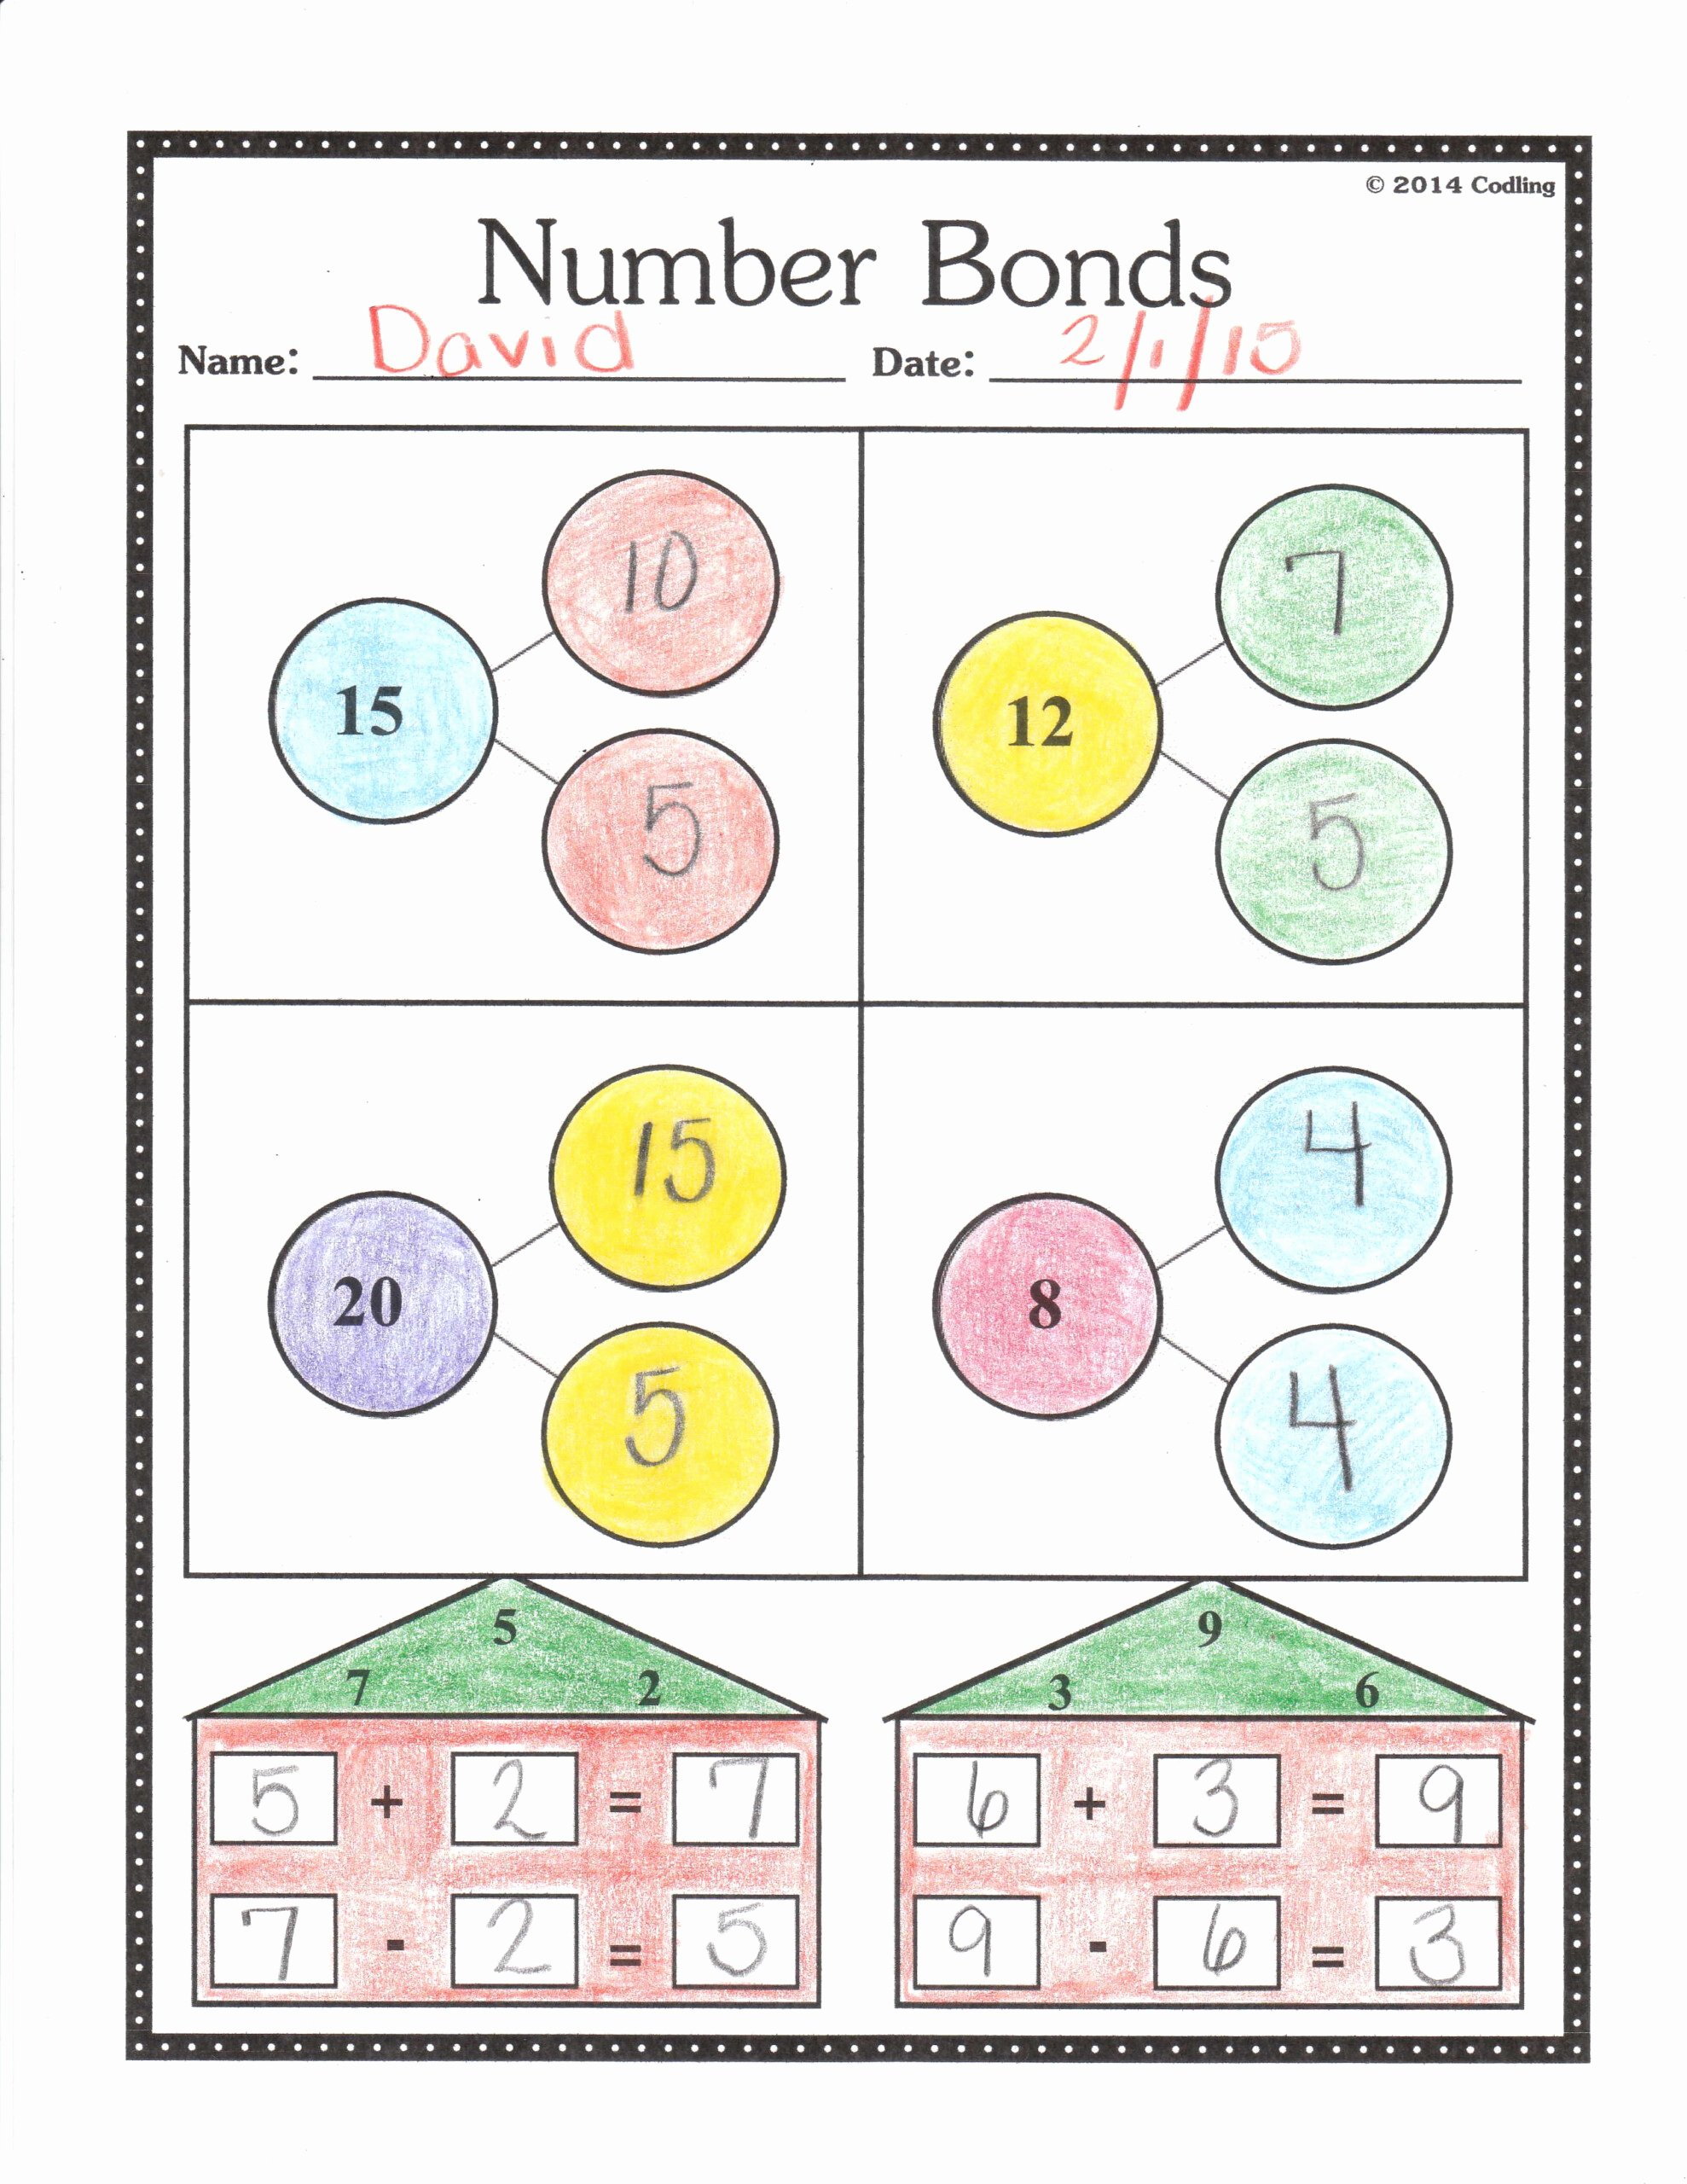 Decomposing Fractions Worksheets 4th Grade Printable De Posing Fractions Worksheets Printables